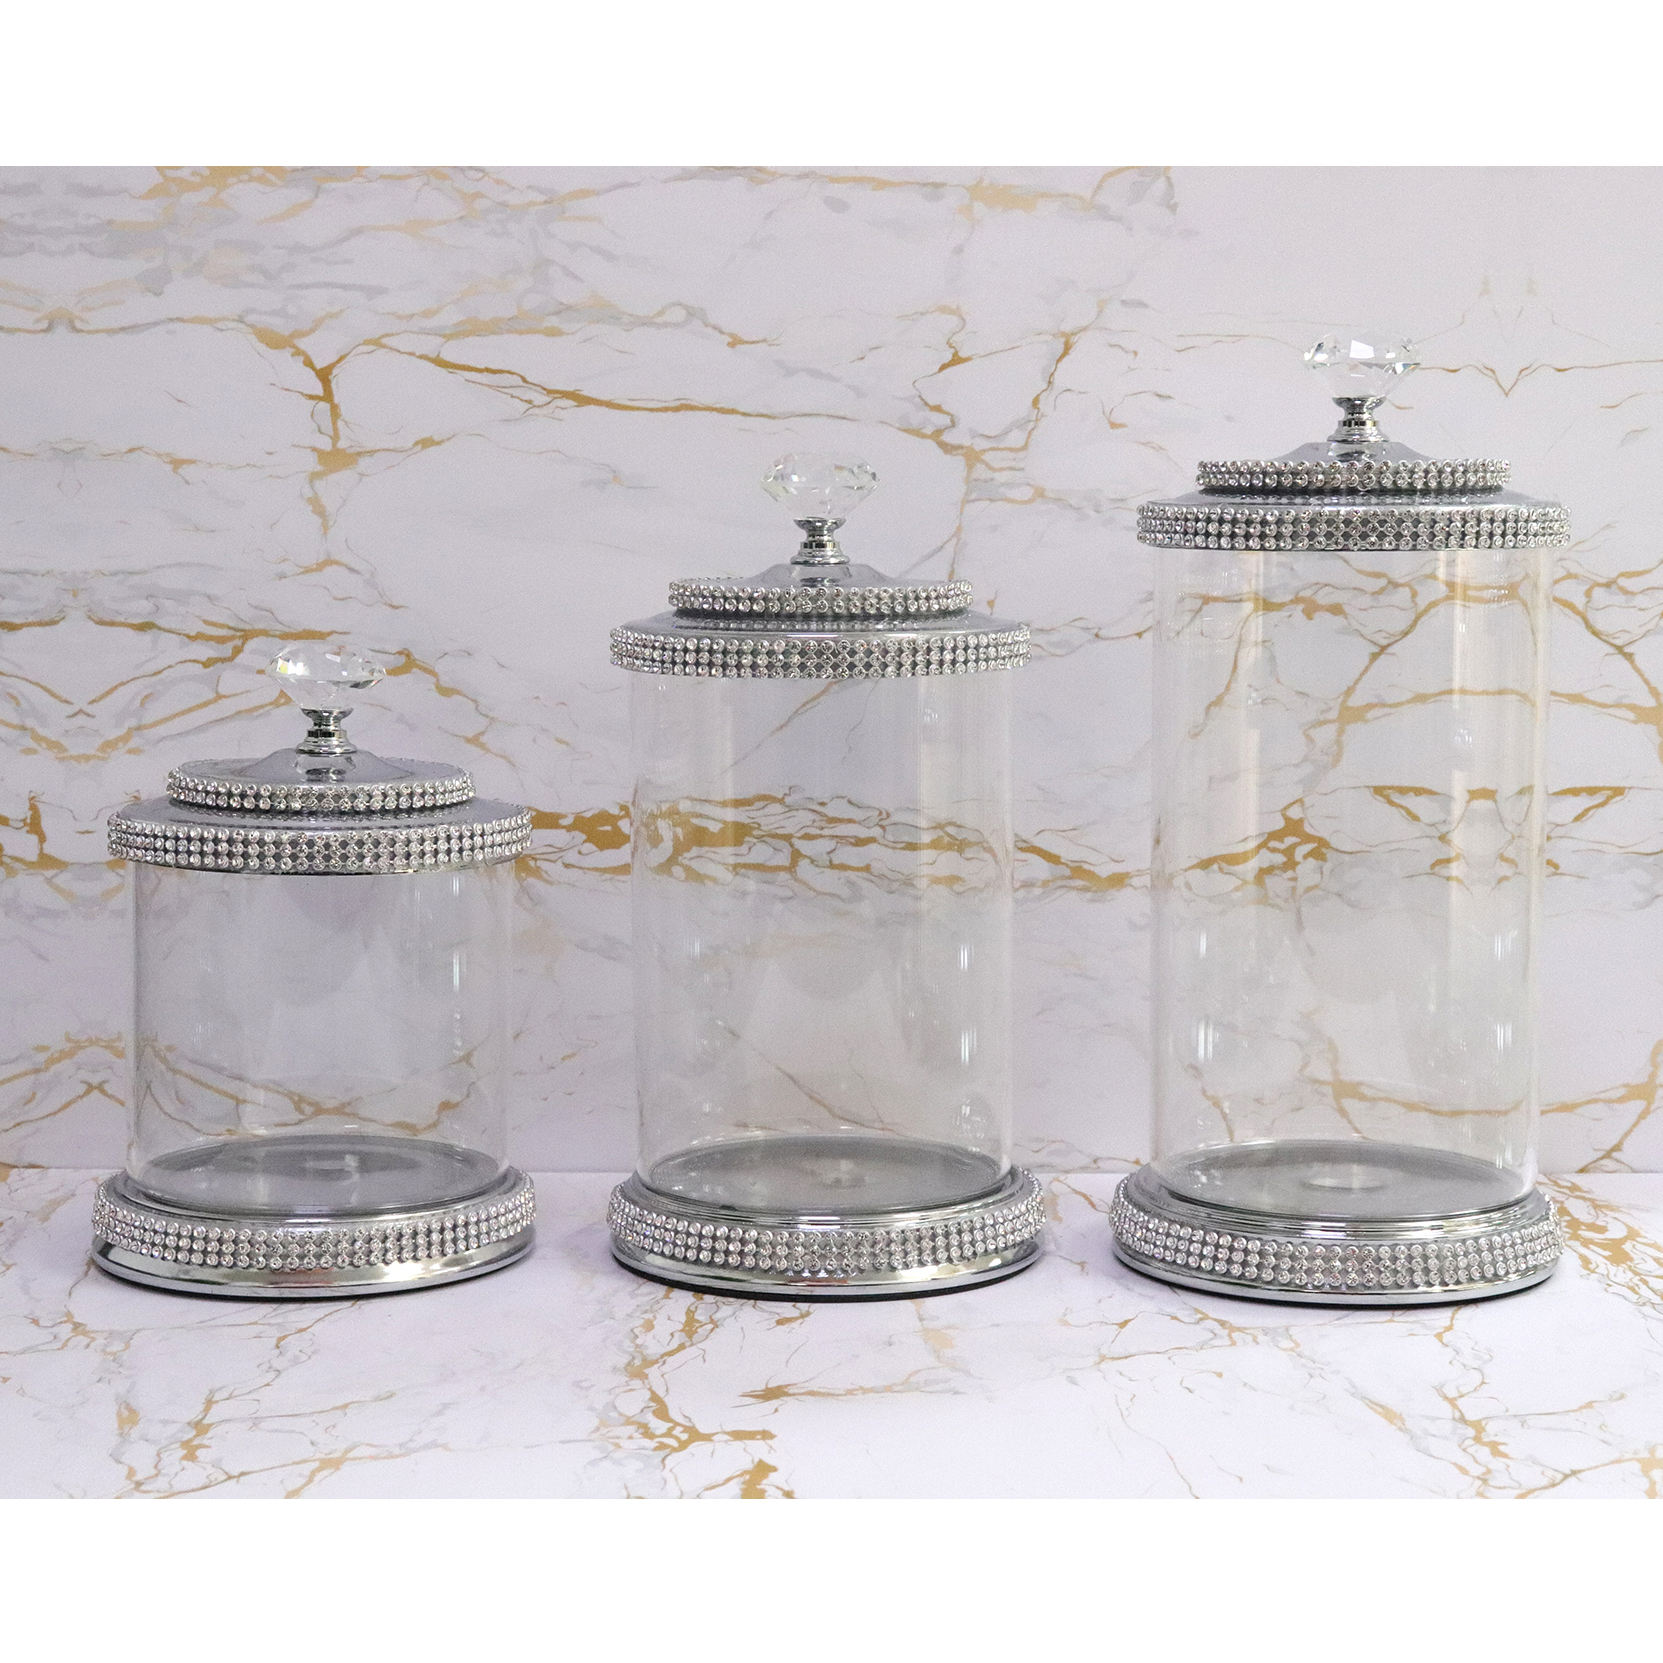 Glass Jar Silver Decor Acrylic Cookie Candy Weed Wholesale Mason Luxury Crystal Containers Jar Glass Storage Bottles With Lid